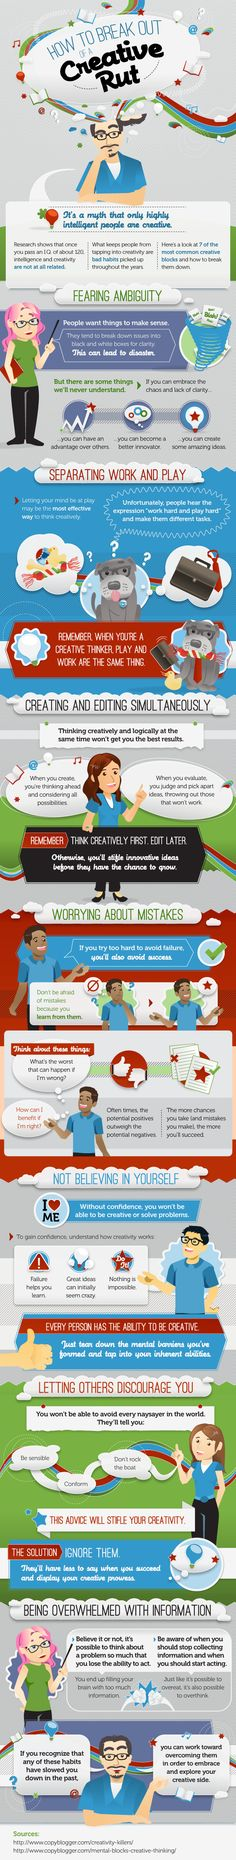 "How To Be More Creative | Infographic creativity ""If you try to hard to avoid failure, you'll also avoid success."""